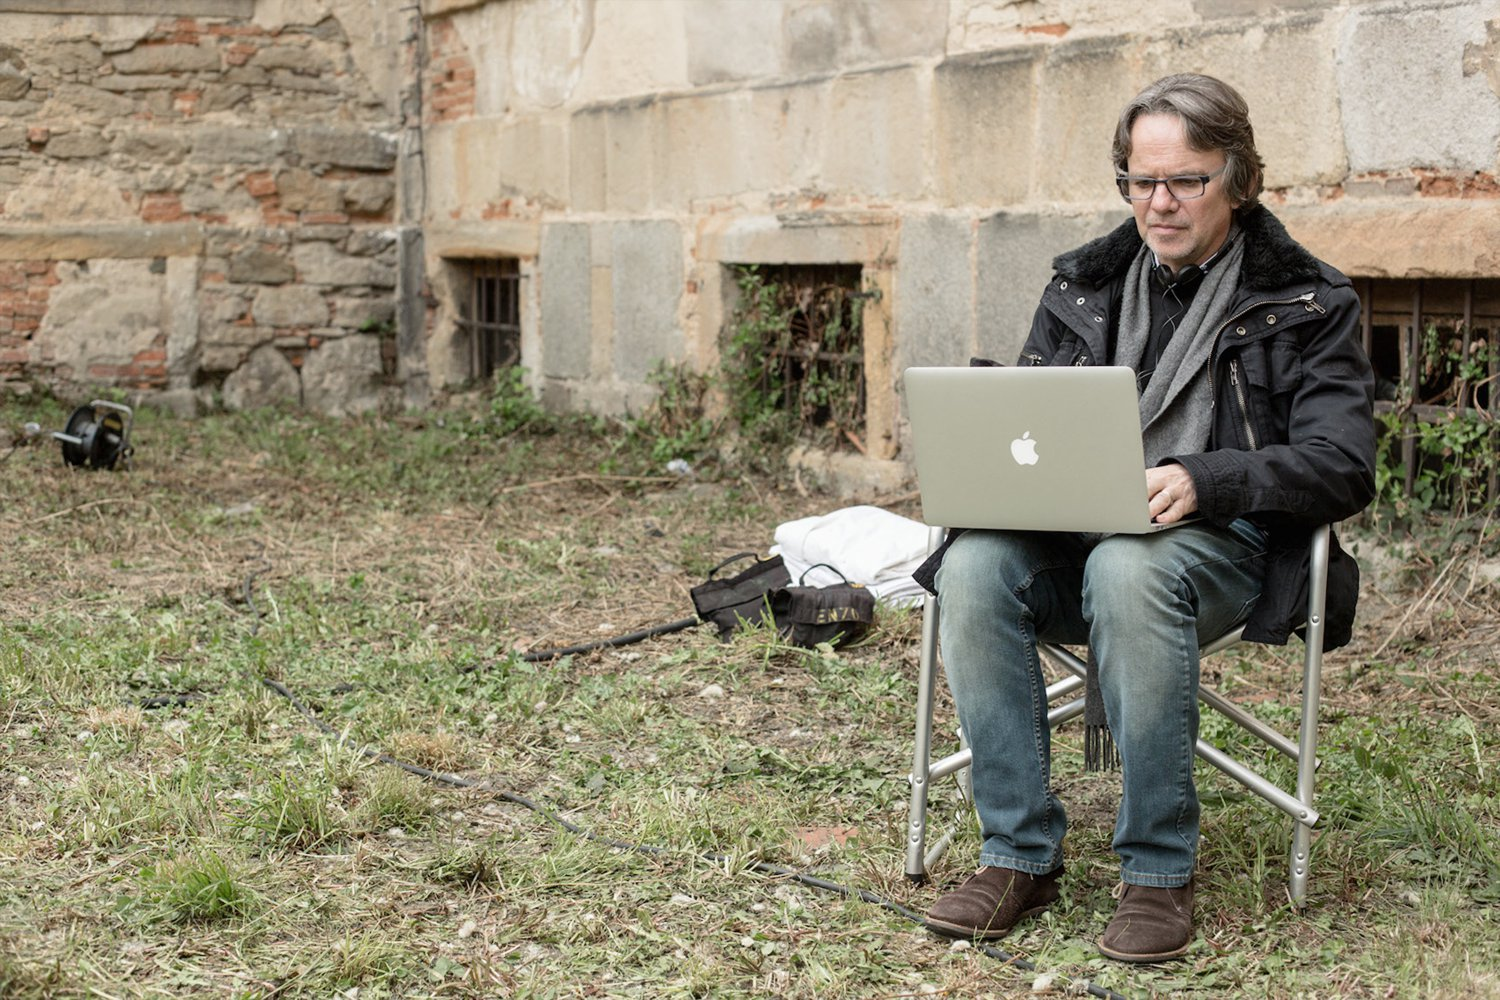 Big Light's Frank Spotnitz